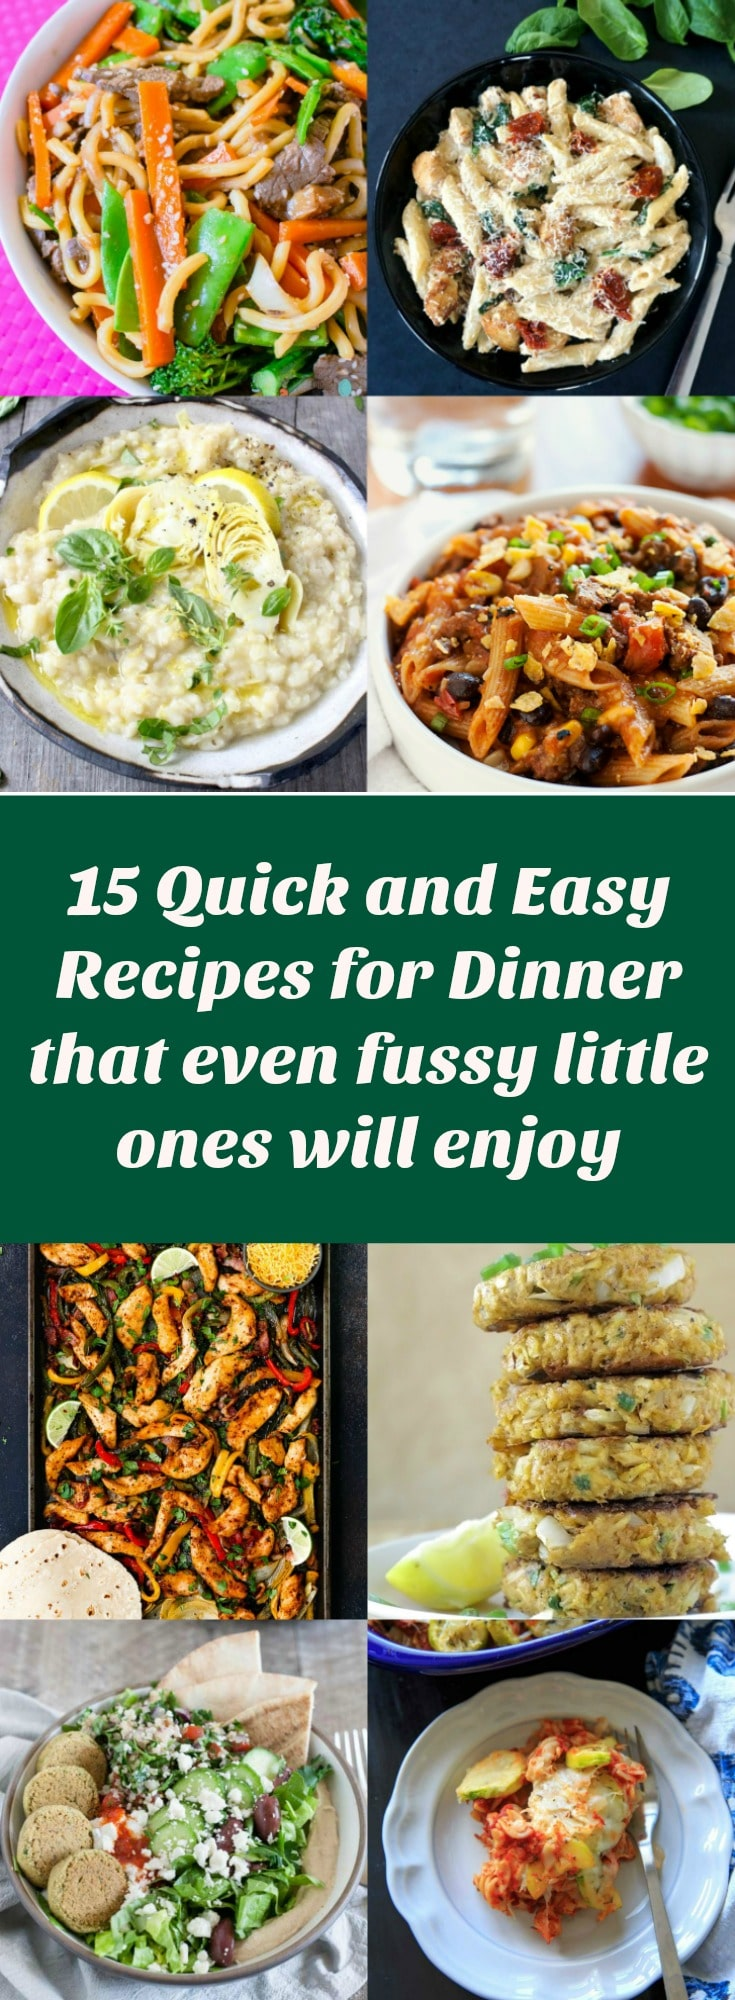 15 Quick and Easy Recipes for Dinner that even fussy little ones will enjoy